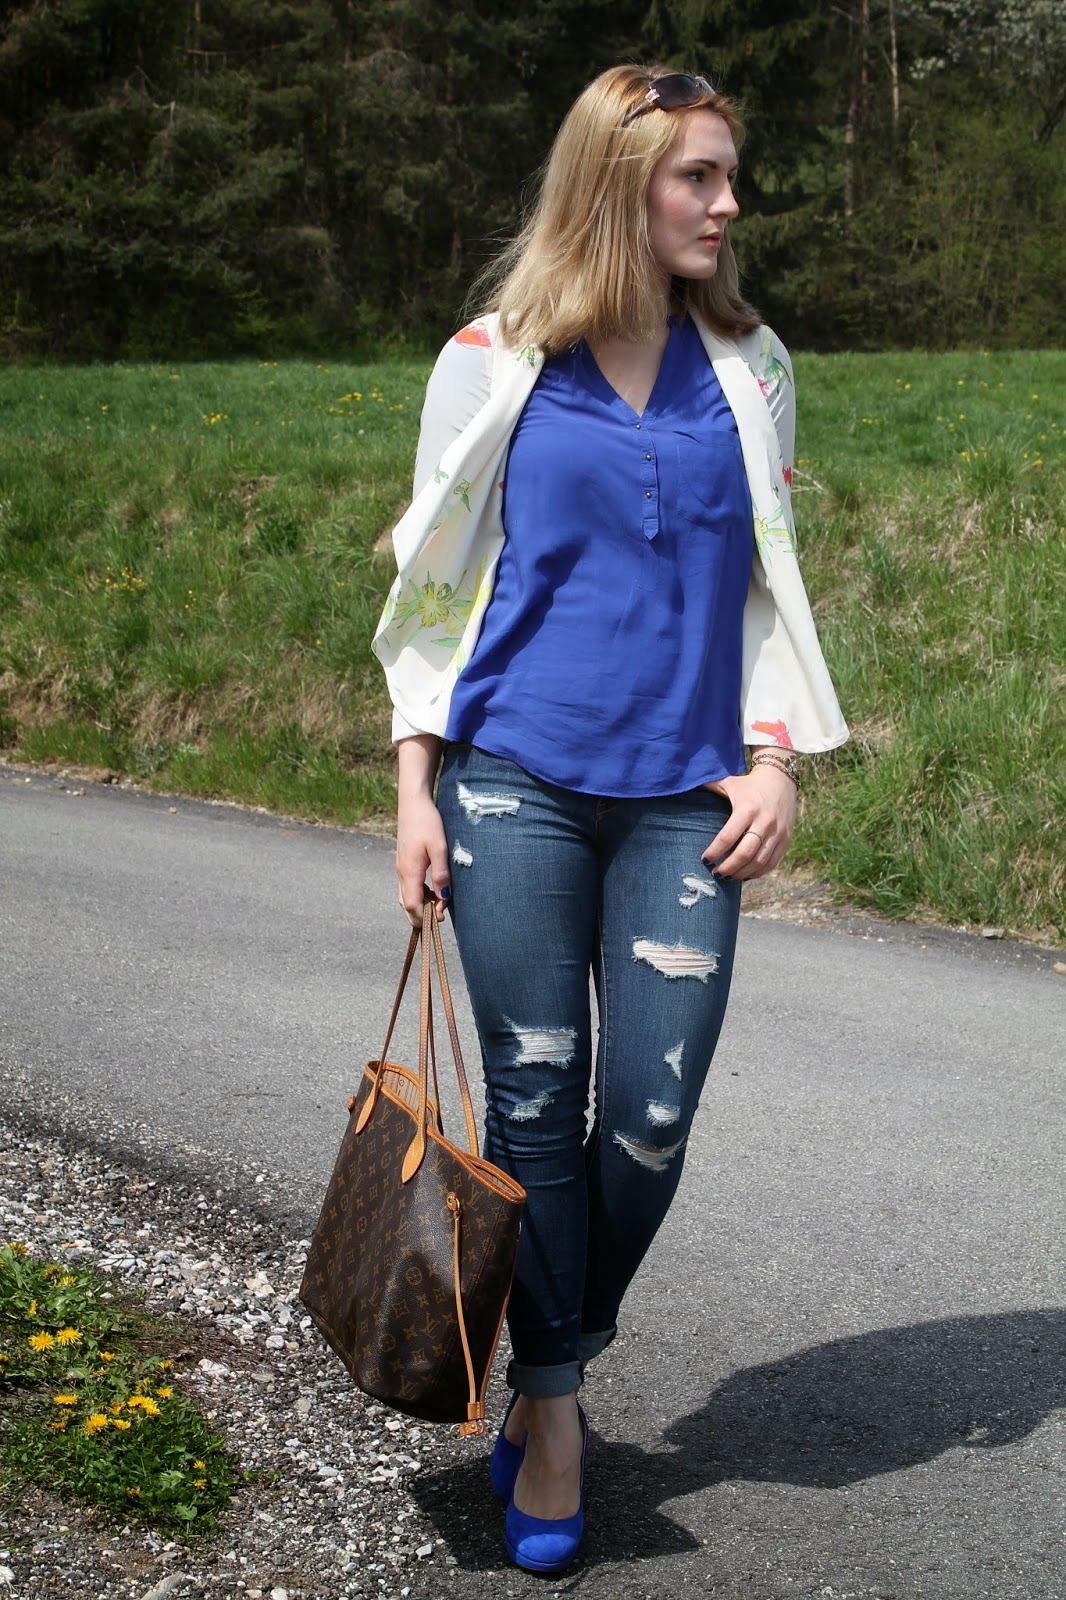 Fashionblogger Austria / Fashionblogger Österreich / Blogger Austria / Blogger Österreich / Kärnten / Carinthia / Köttmannsdorf / Lavender Star / Svetlana / Spring Look / Spring Style / Spring Outift / White Blazer / Flower Blazer / Heels Blue / Ripped Jeans / Louis Vuitton Neverfull / Zara / Deichmann /